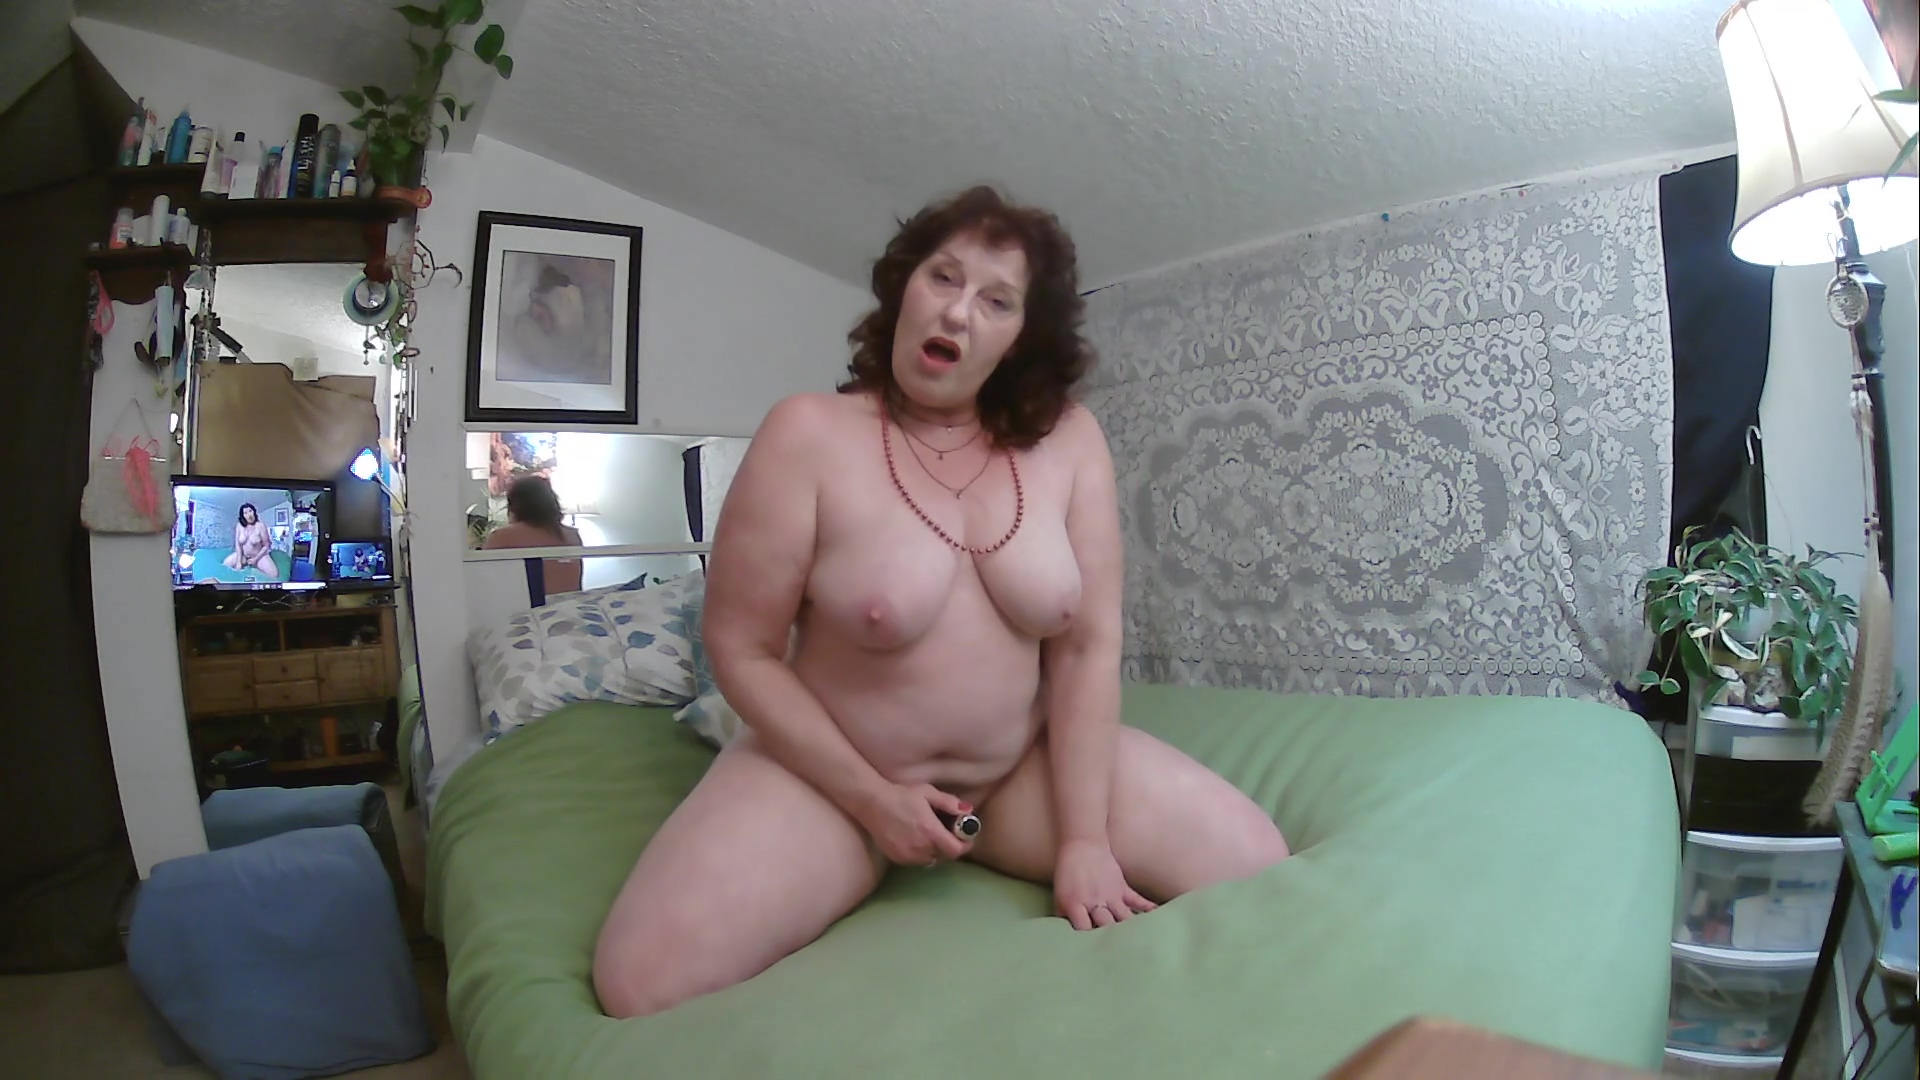 V 575 First Financial Domination Ceo Ross Taken Down By His Angry Wife